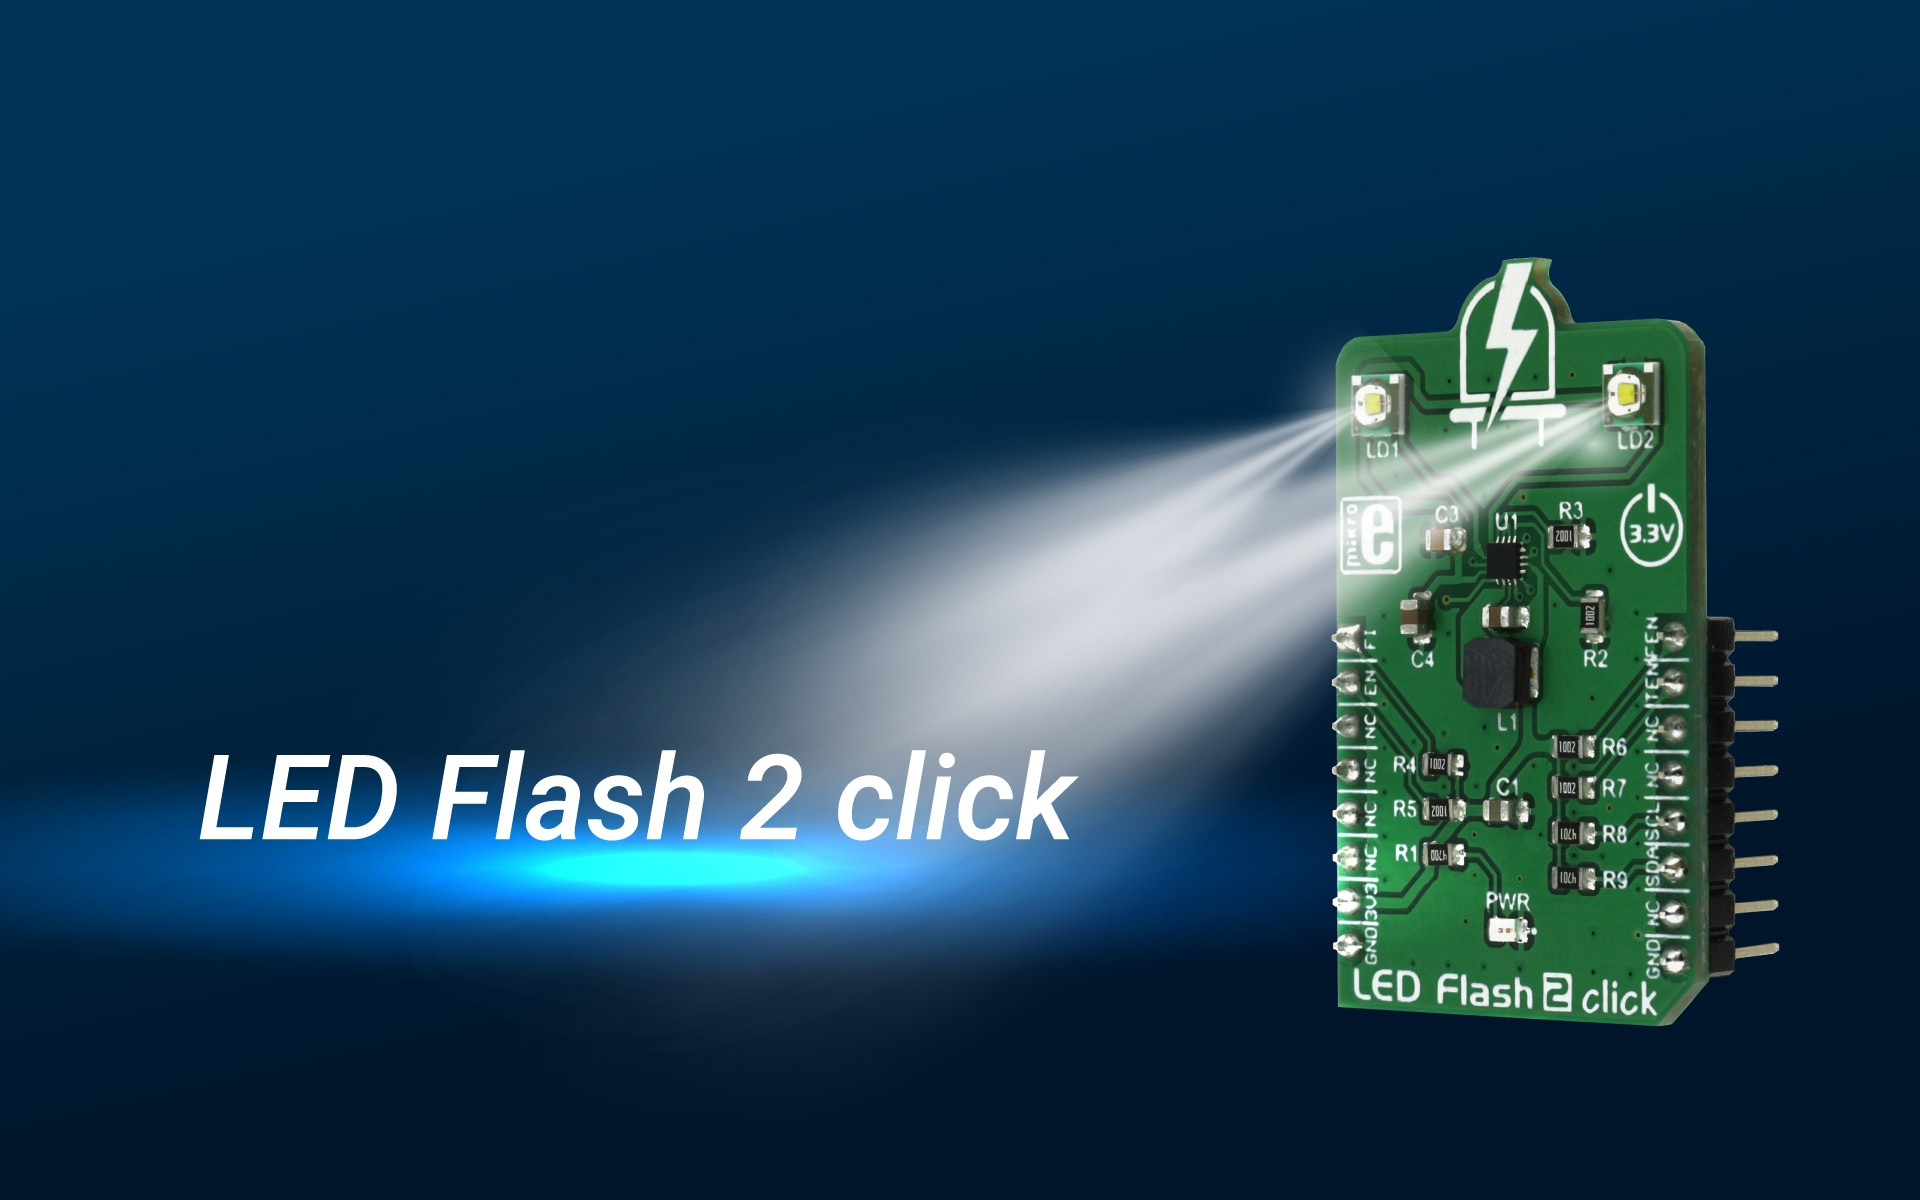 LED Flash 2 click - a high-efficiency flash LED driver